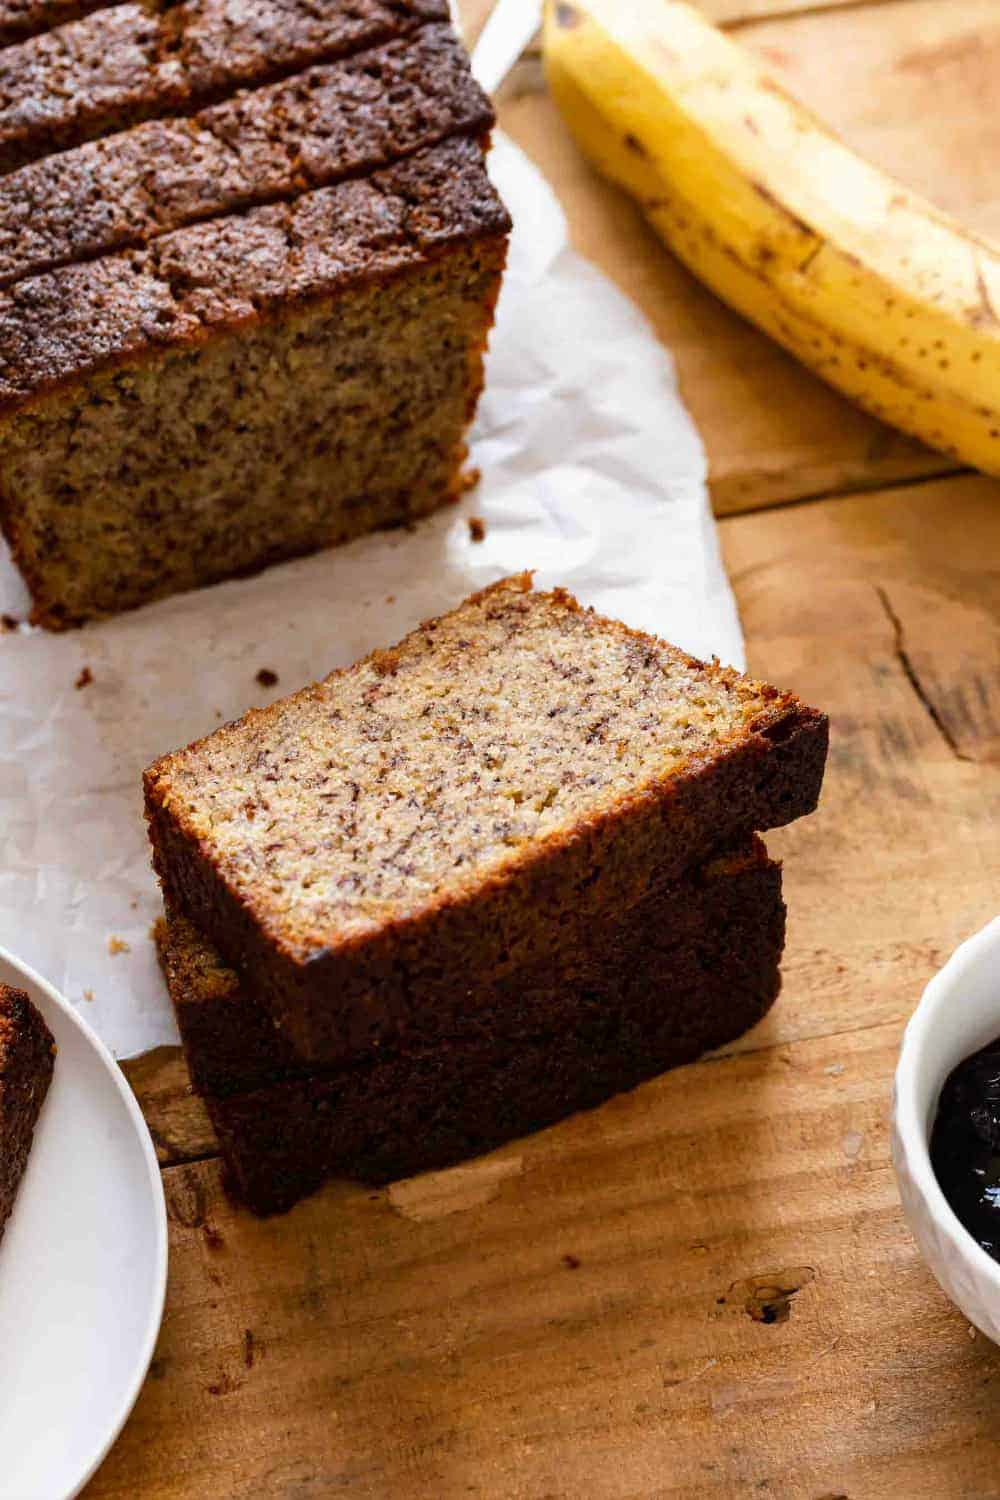 Slices of Dominique Ansel's banana bread